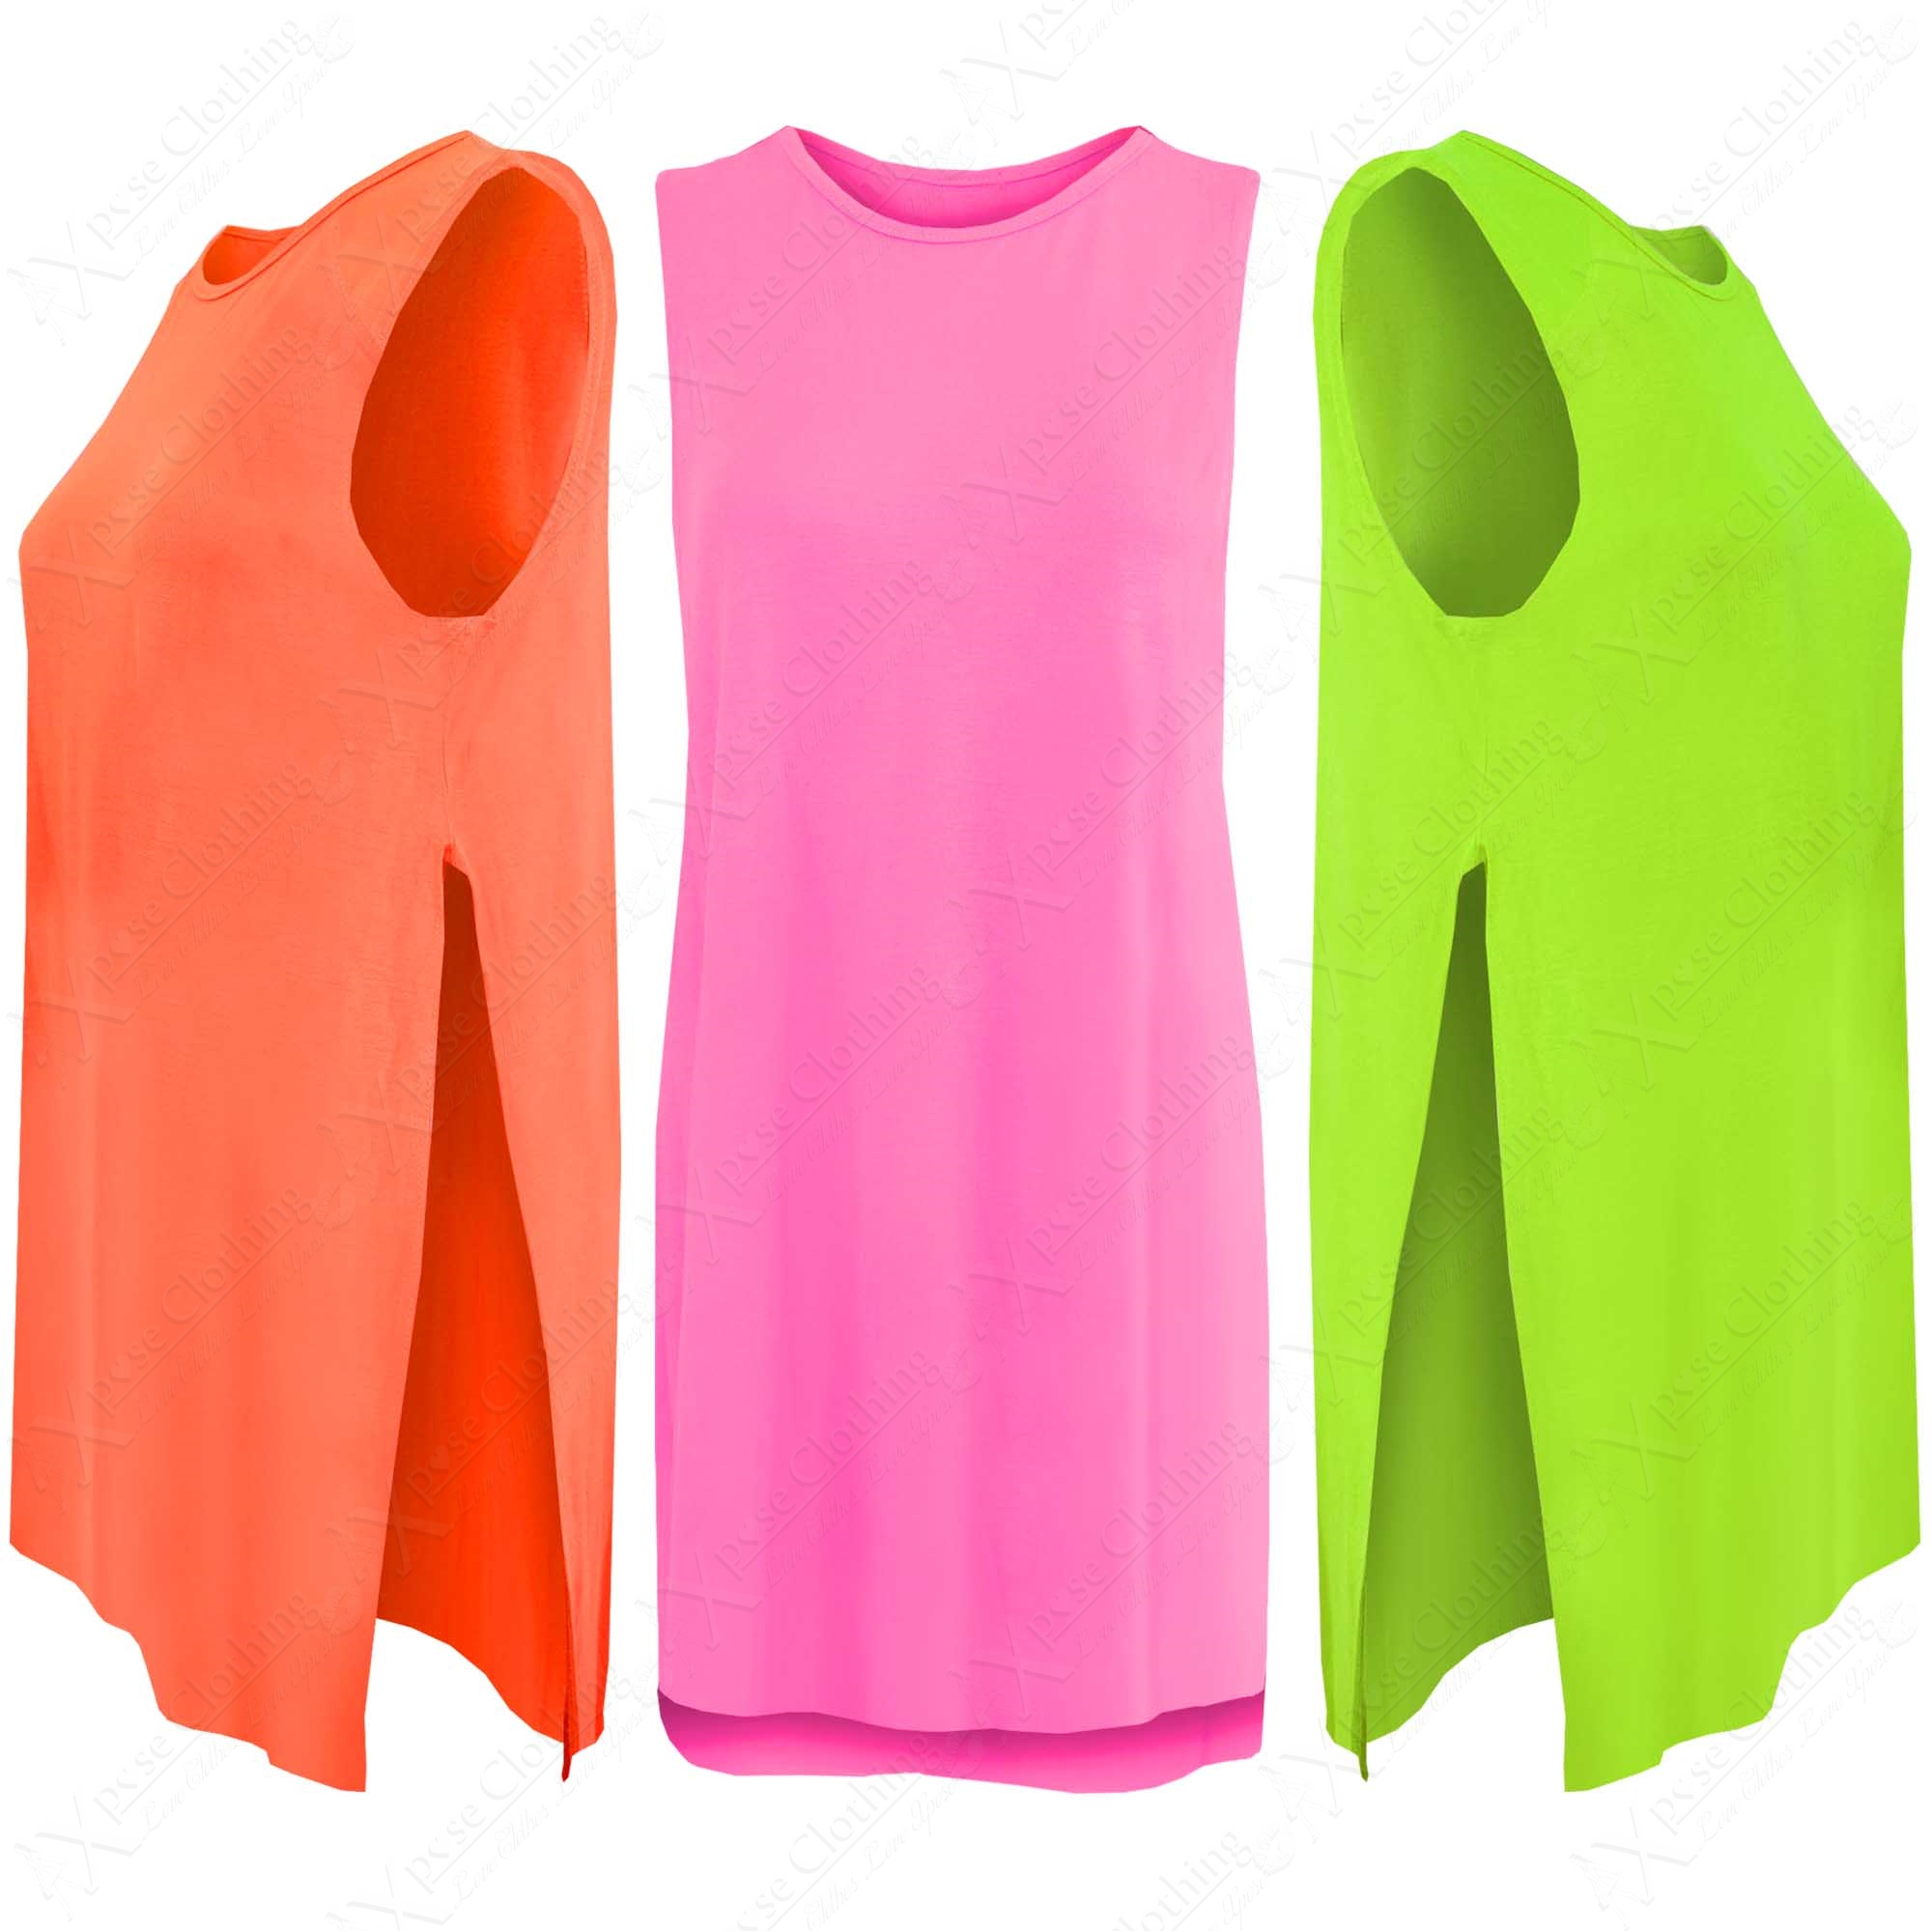 Check out our cool trendy women's tops and fill your closet with stunning fashion Types: Dresses, Tops, Jeans, Activewear, Sweaters, Jackets, Maternity.